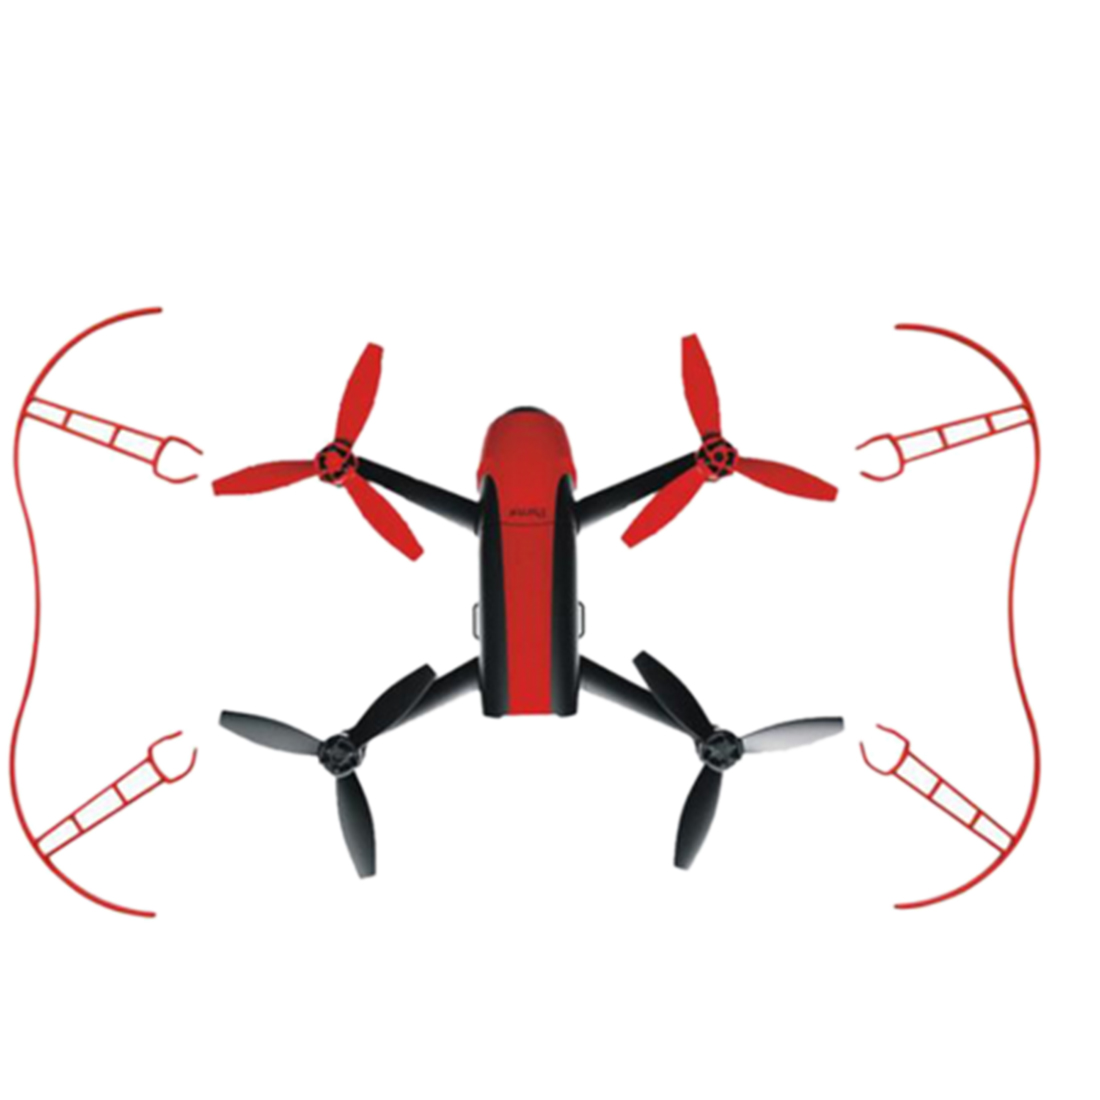 New Parrot Protection ring Propeller Protective Guard Bumper Prop for Parrot Bebop 2.0 RC Drone Quadcopter Parts Accessories